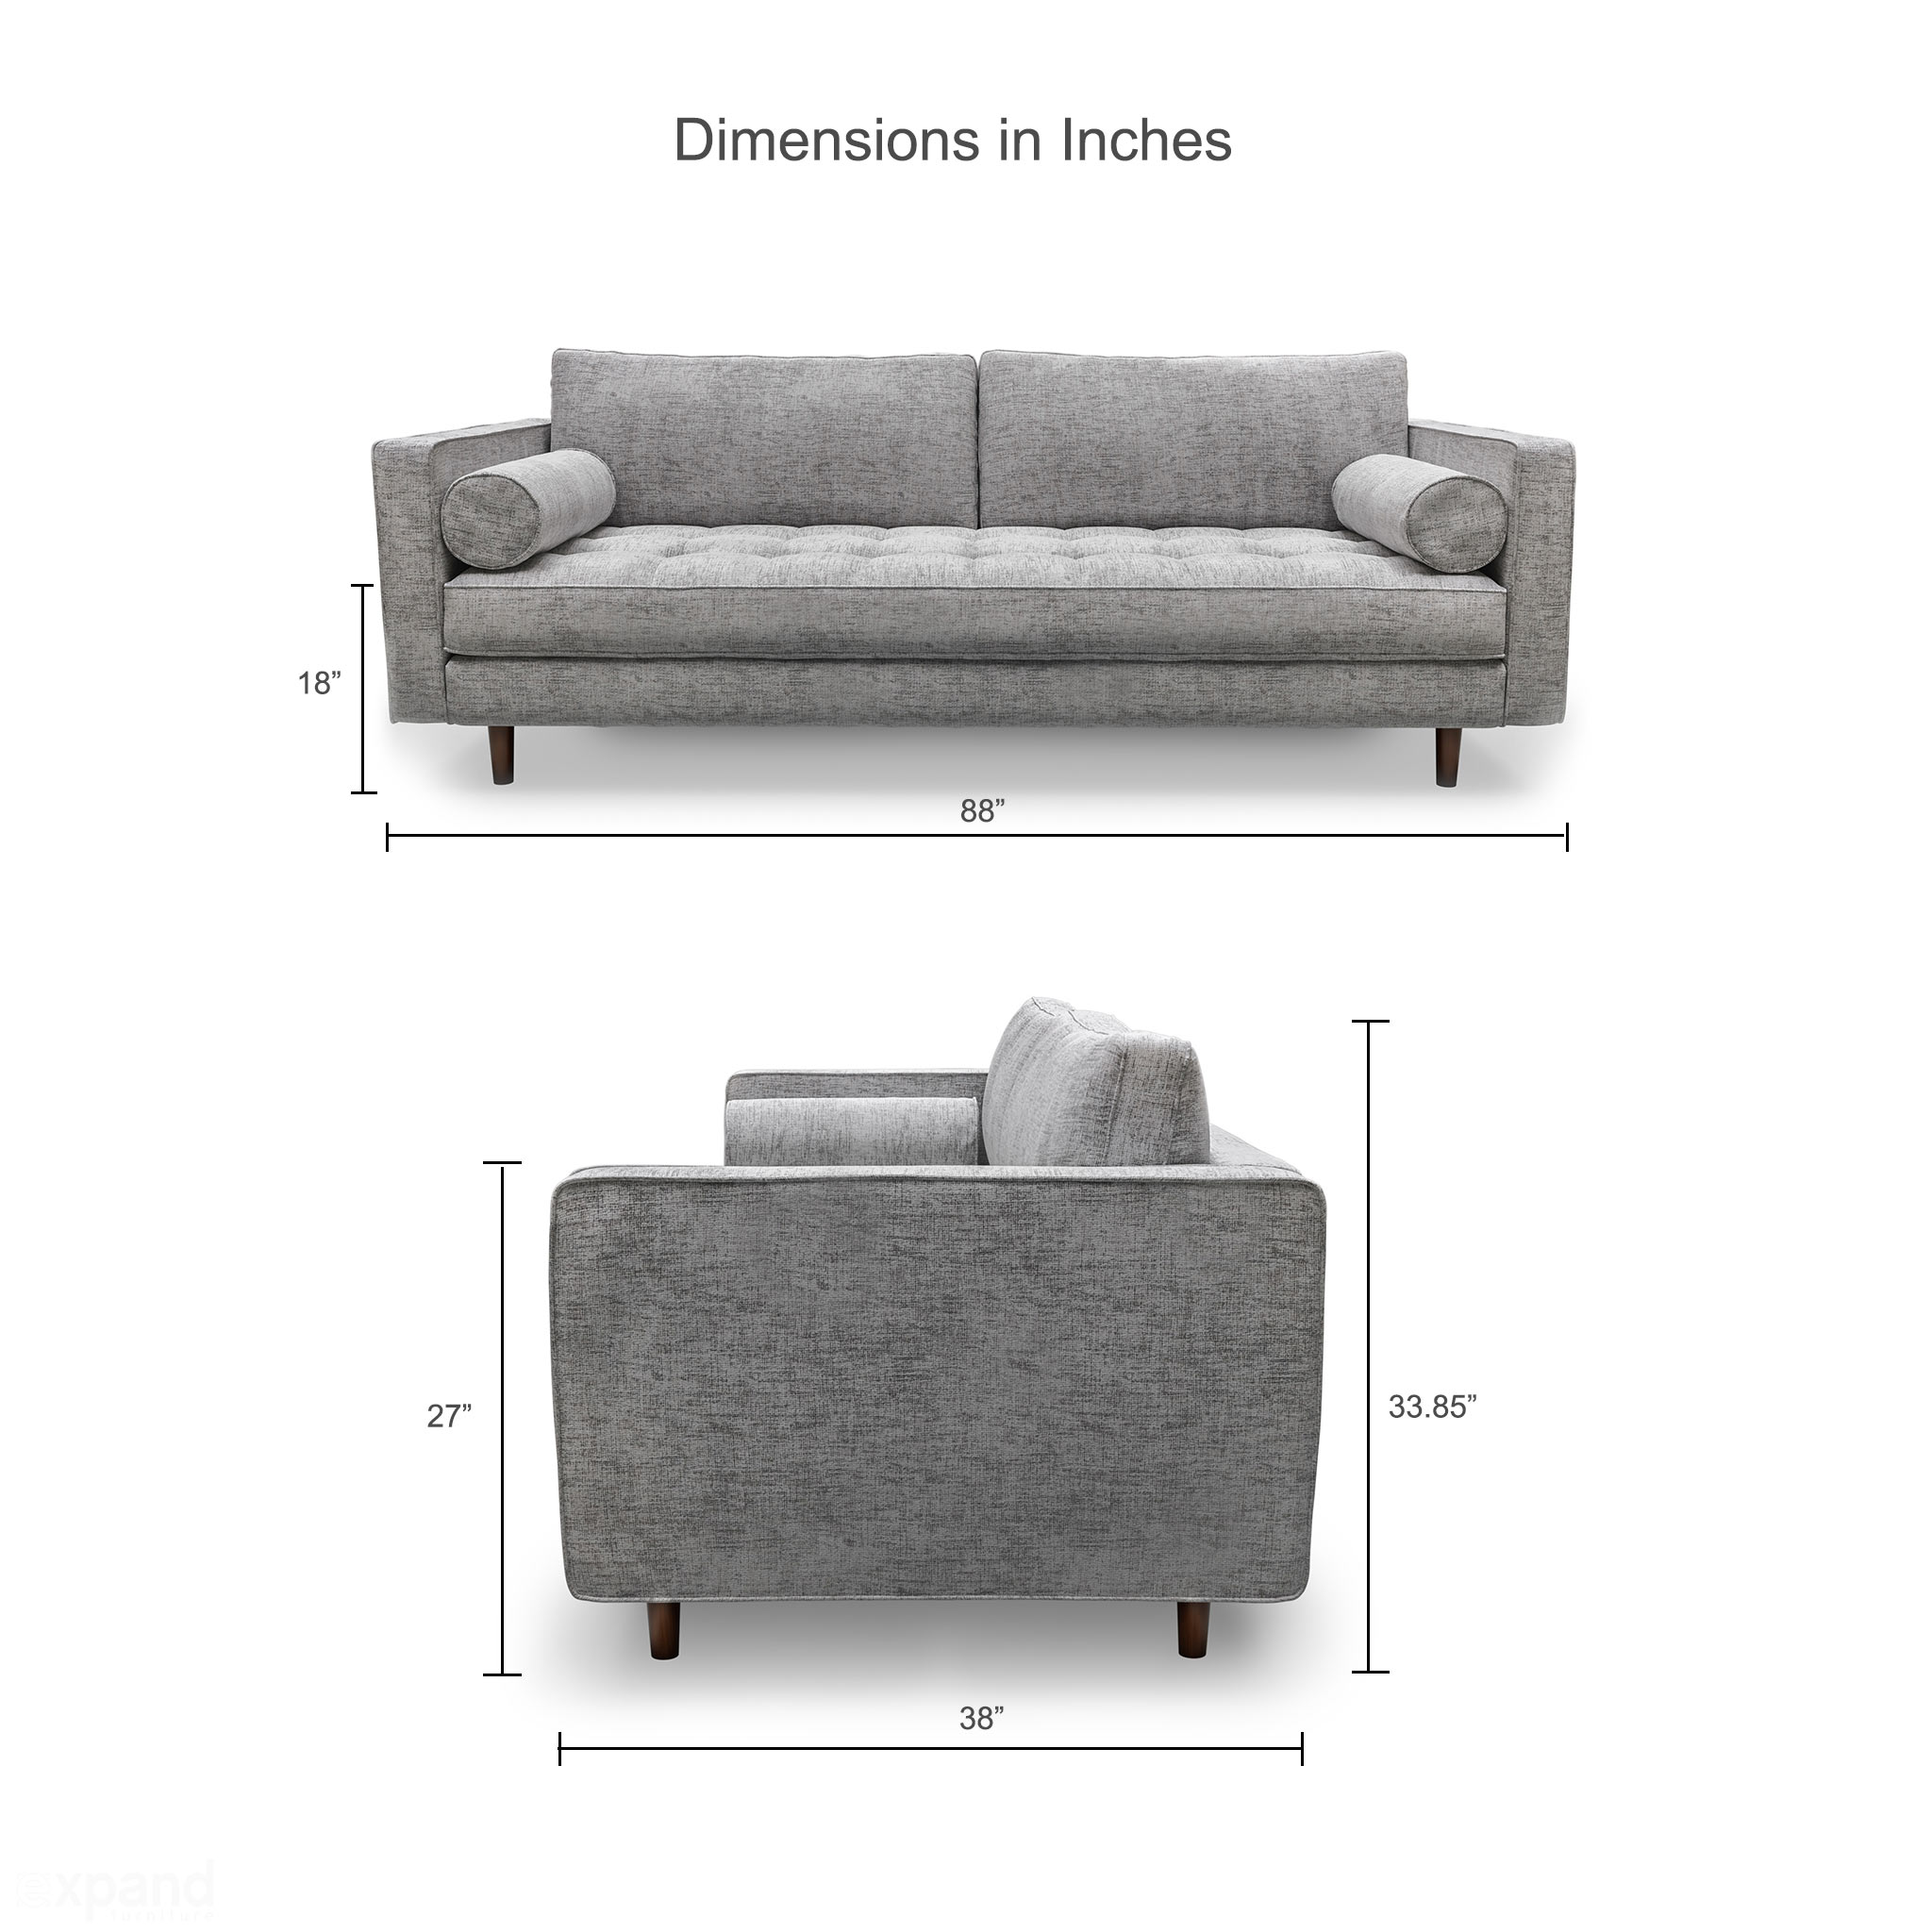 Scandormi Modern Sofa Grey Mid Century Tufted Couch Expand Furniture Folding Tables Smarter Wall Beds Space Savers